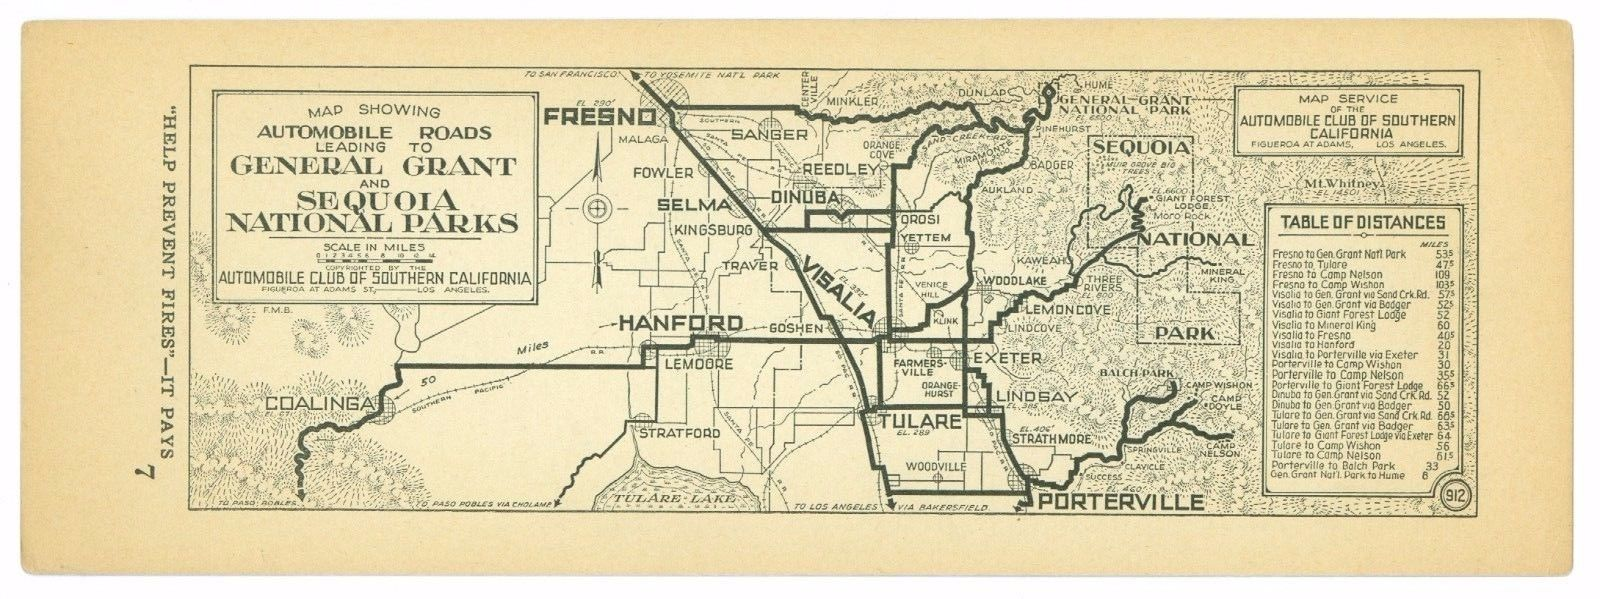 1920s General Grant & Sequoia National Park AAA Automobile Club Southern Cal Map